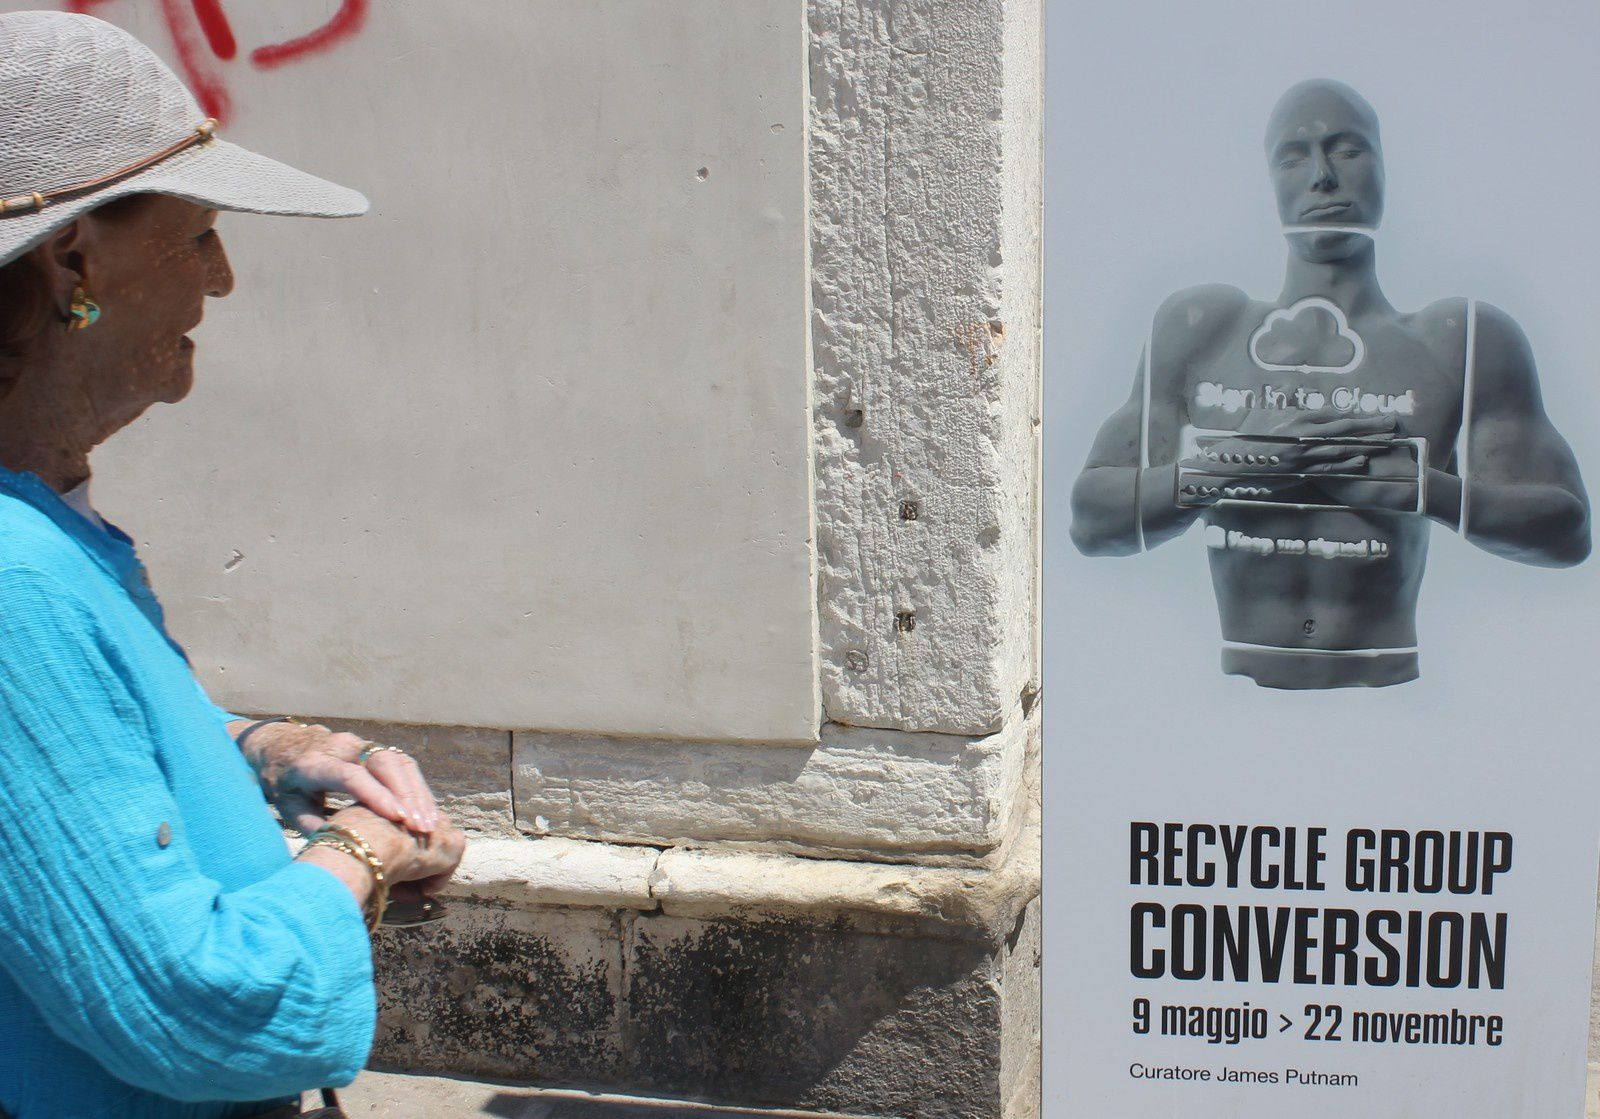 Venise. Recycle group conversion. Eglise Sant Antonin.